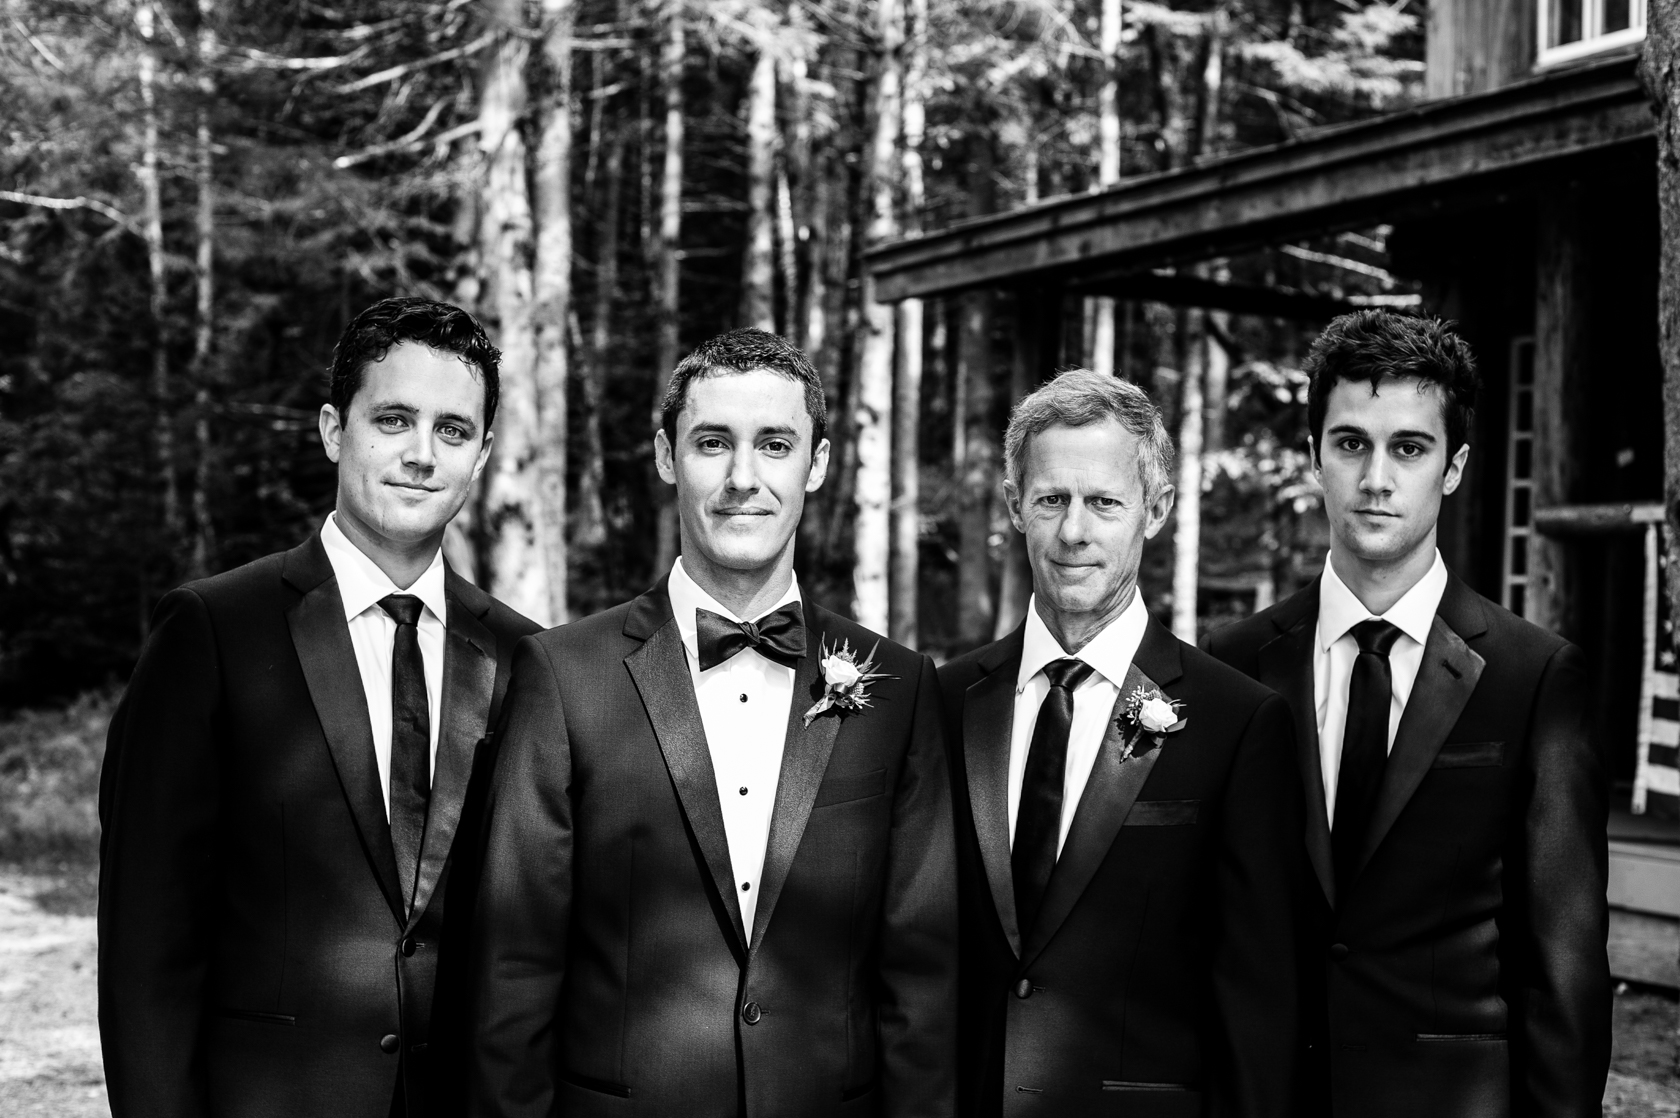 groom and his best men pose for a portrait in the woods